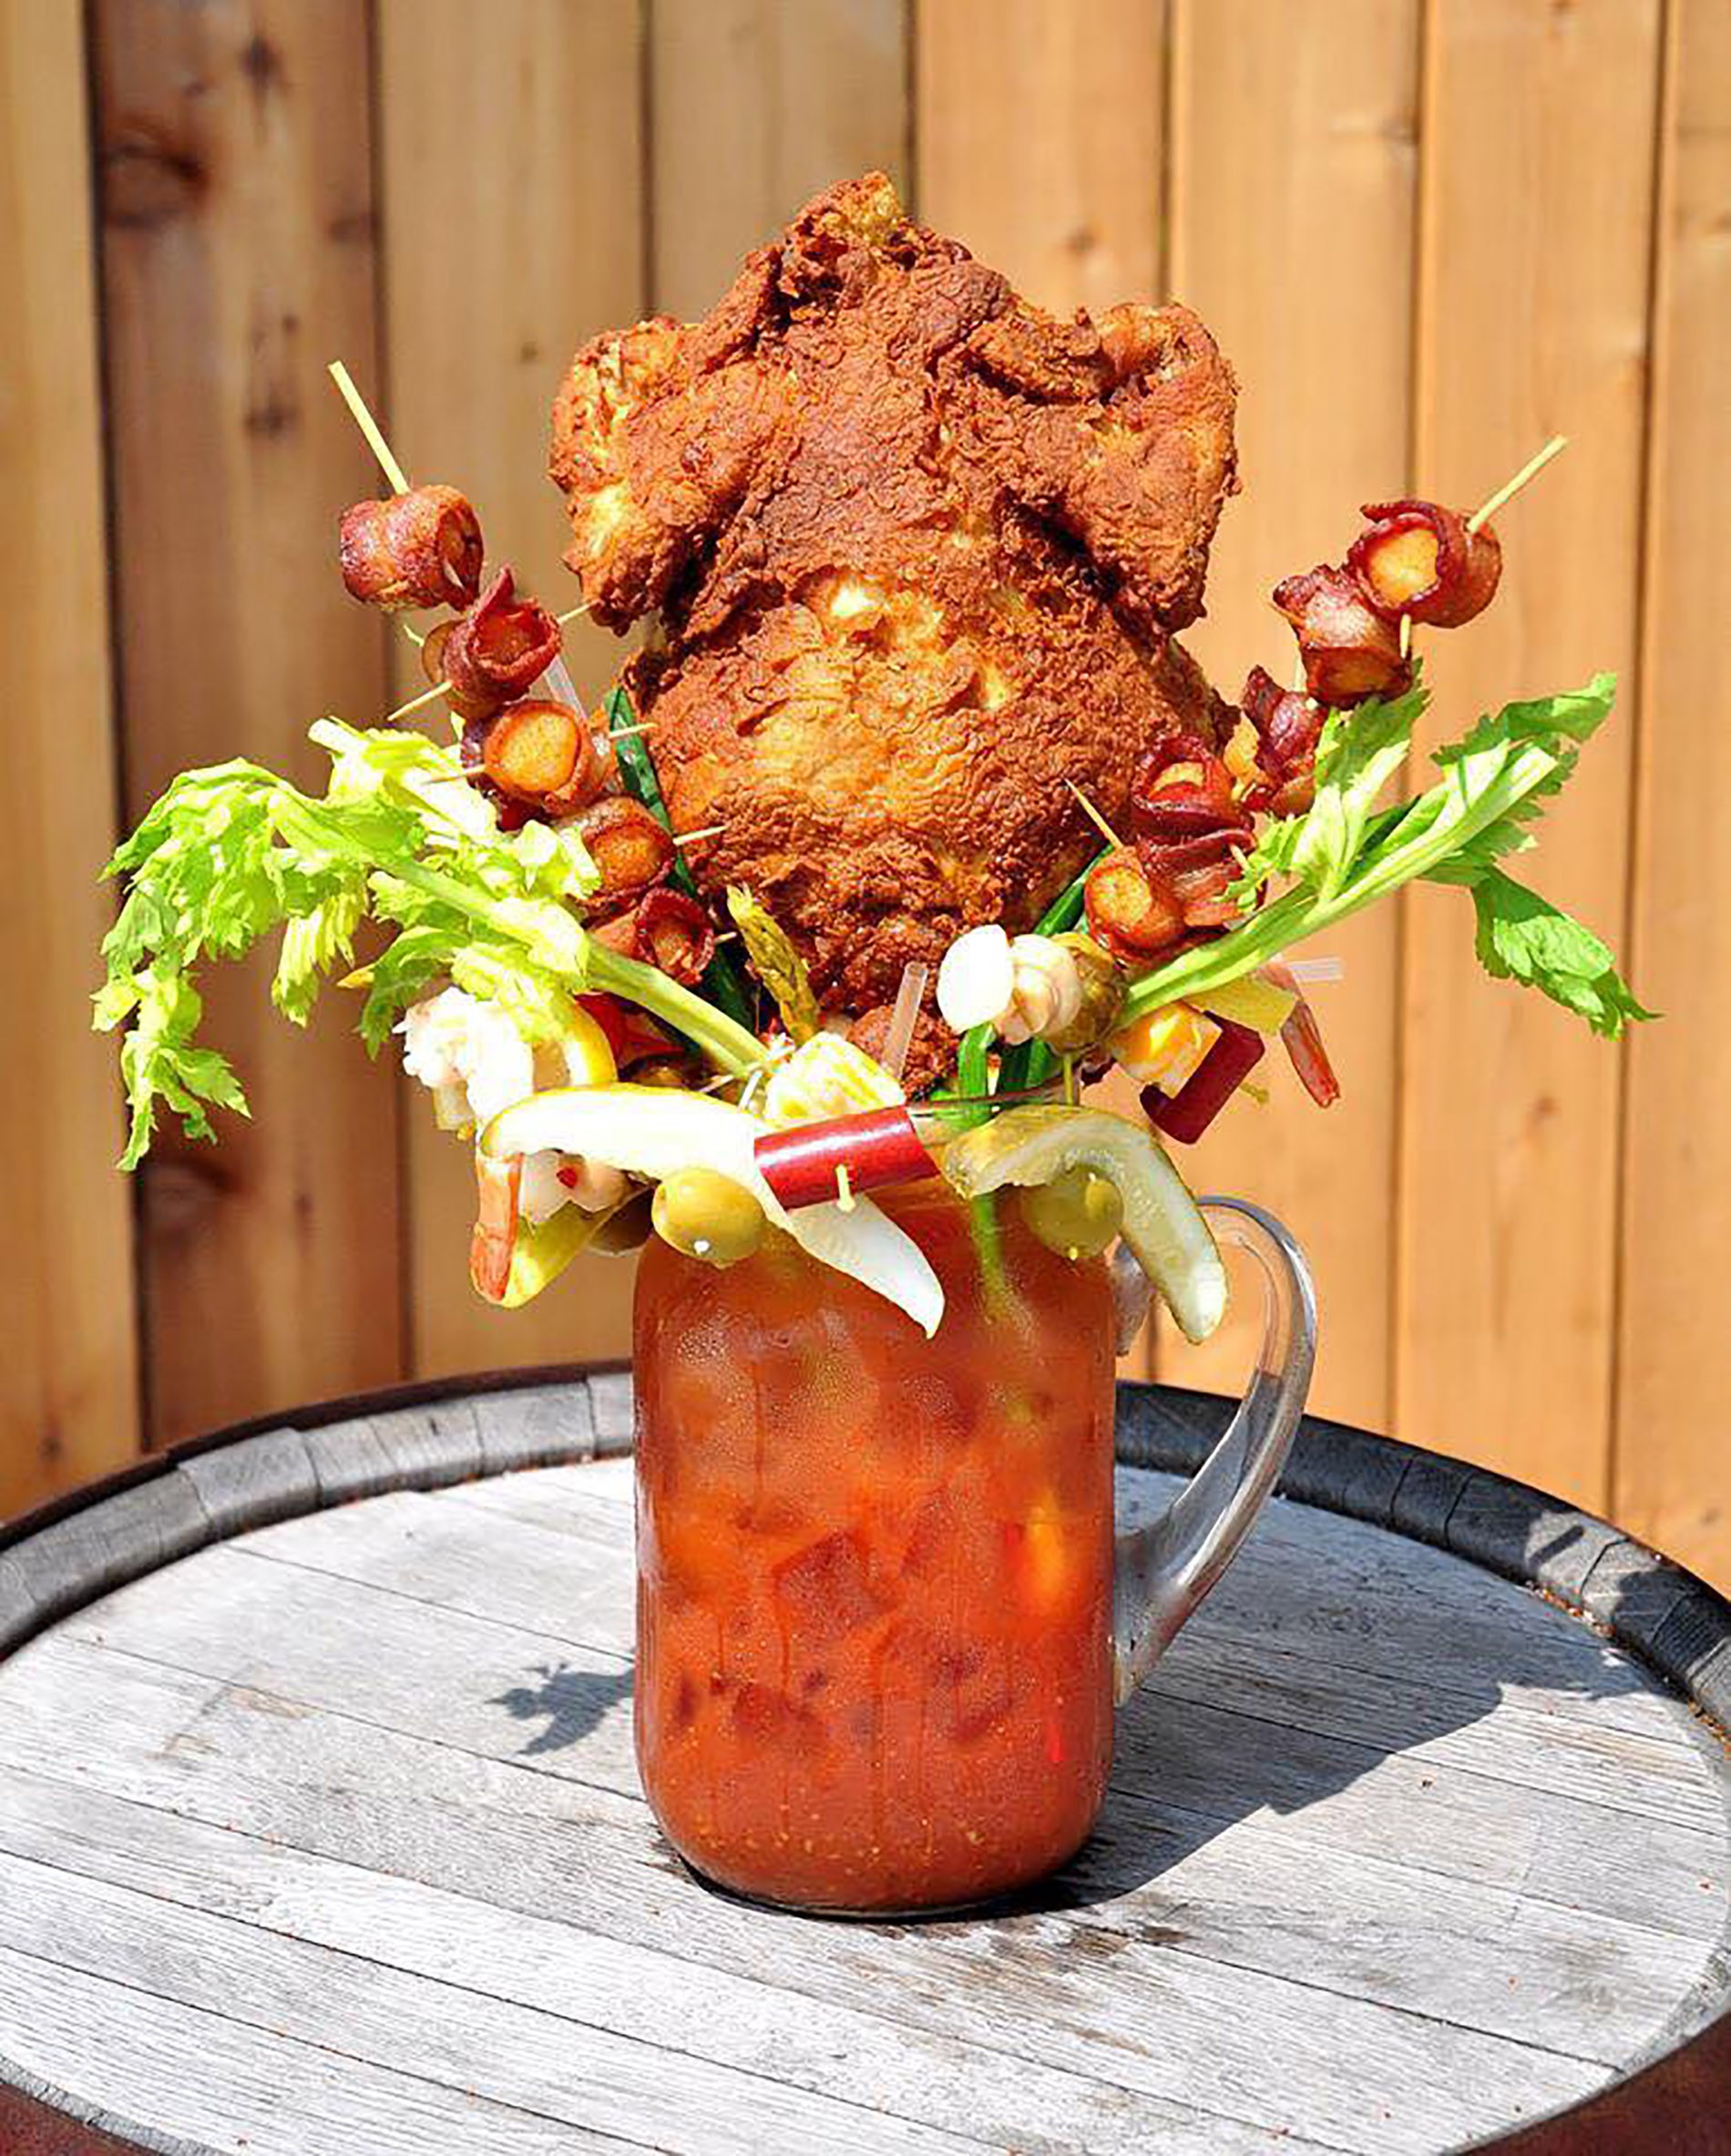 sobelmans-fried-chicken-bloody-mary